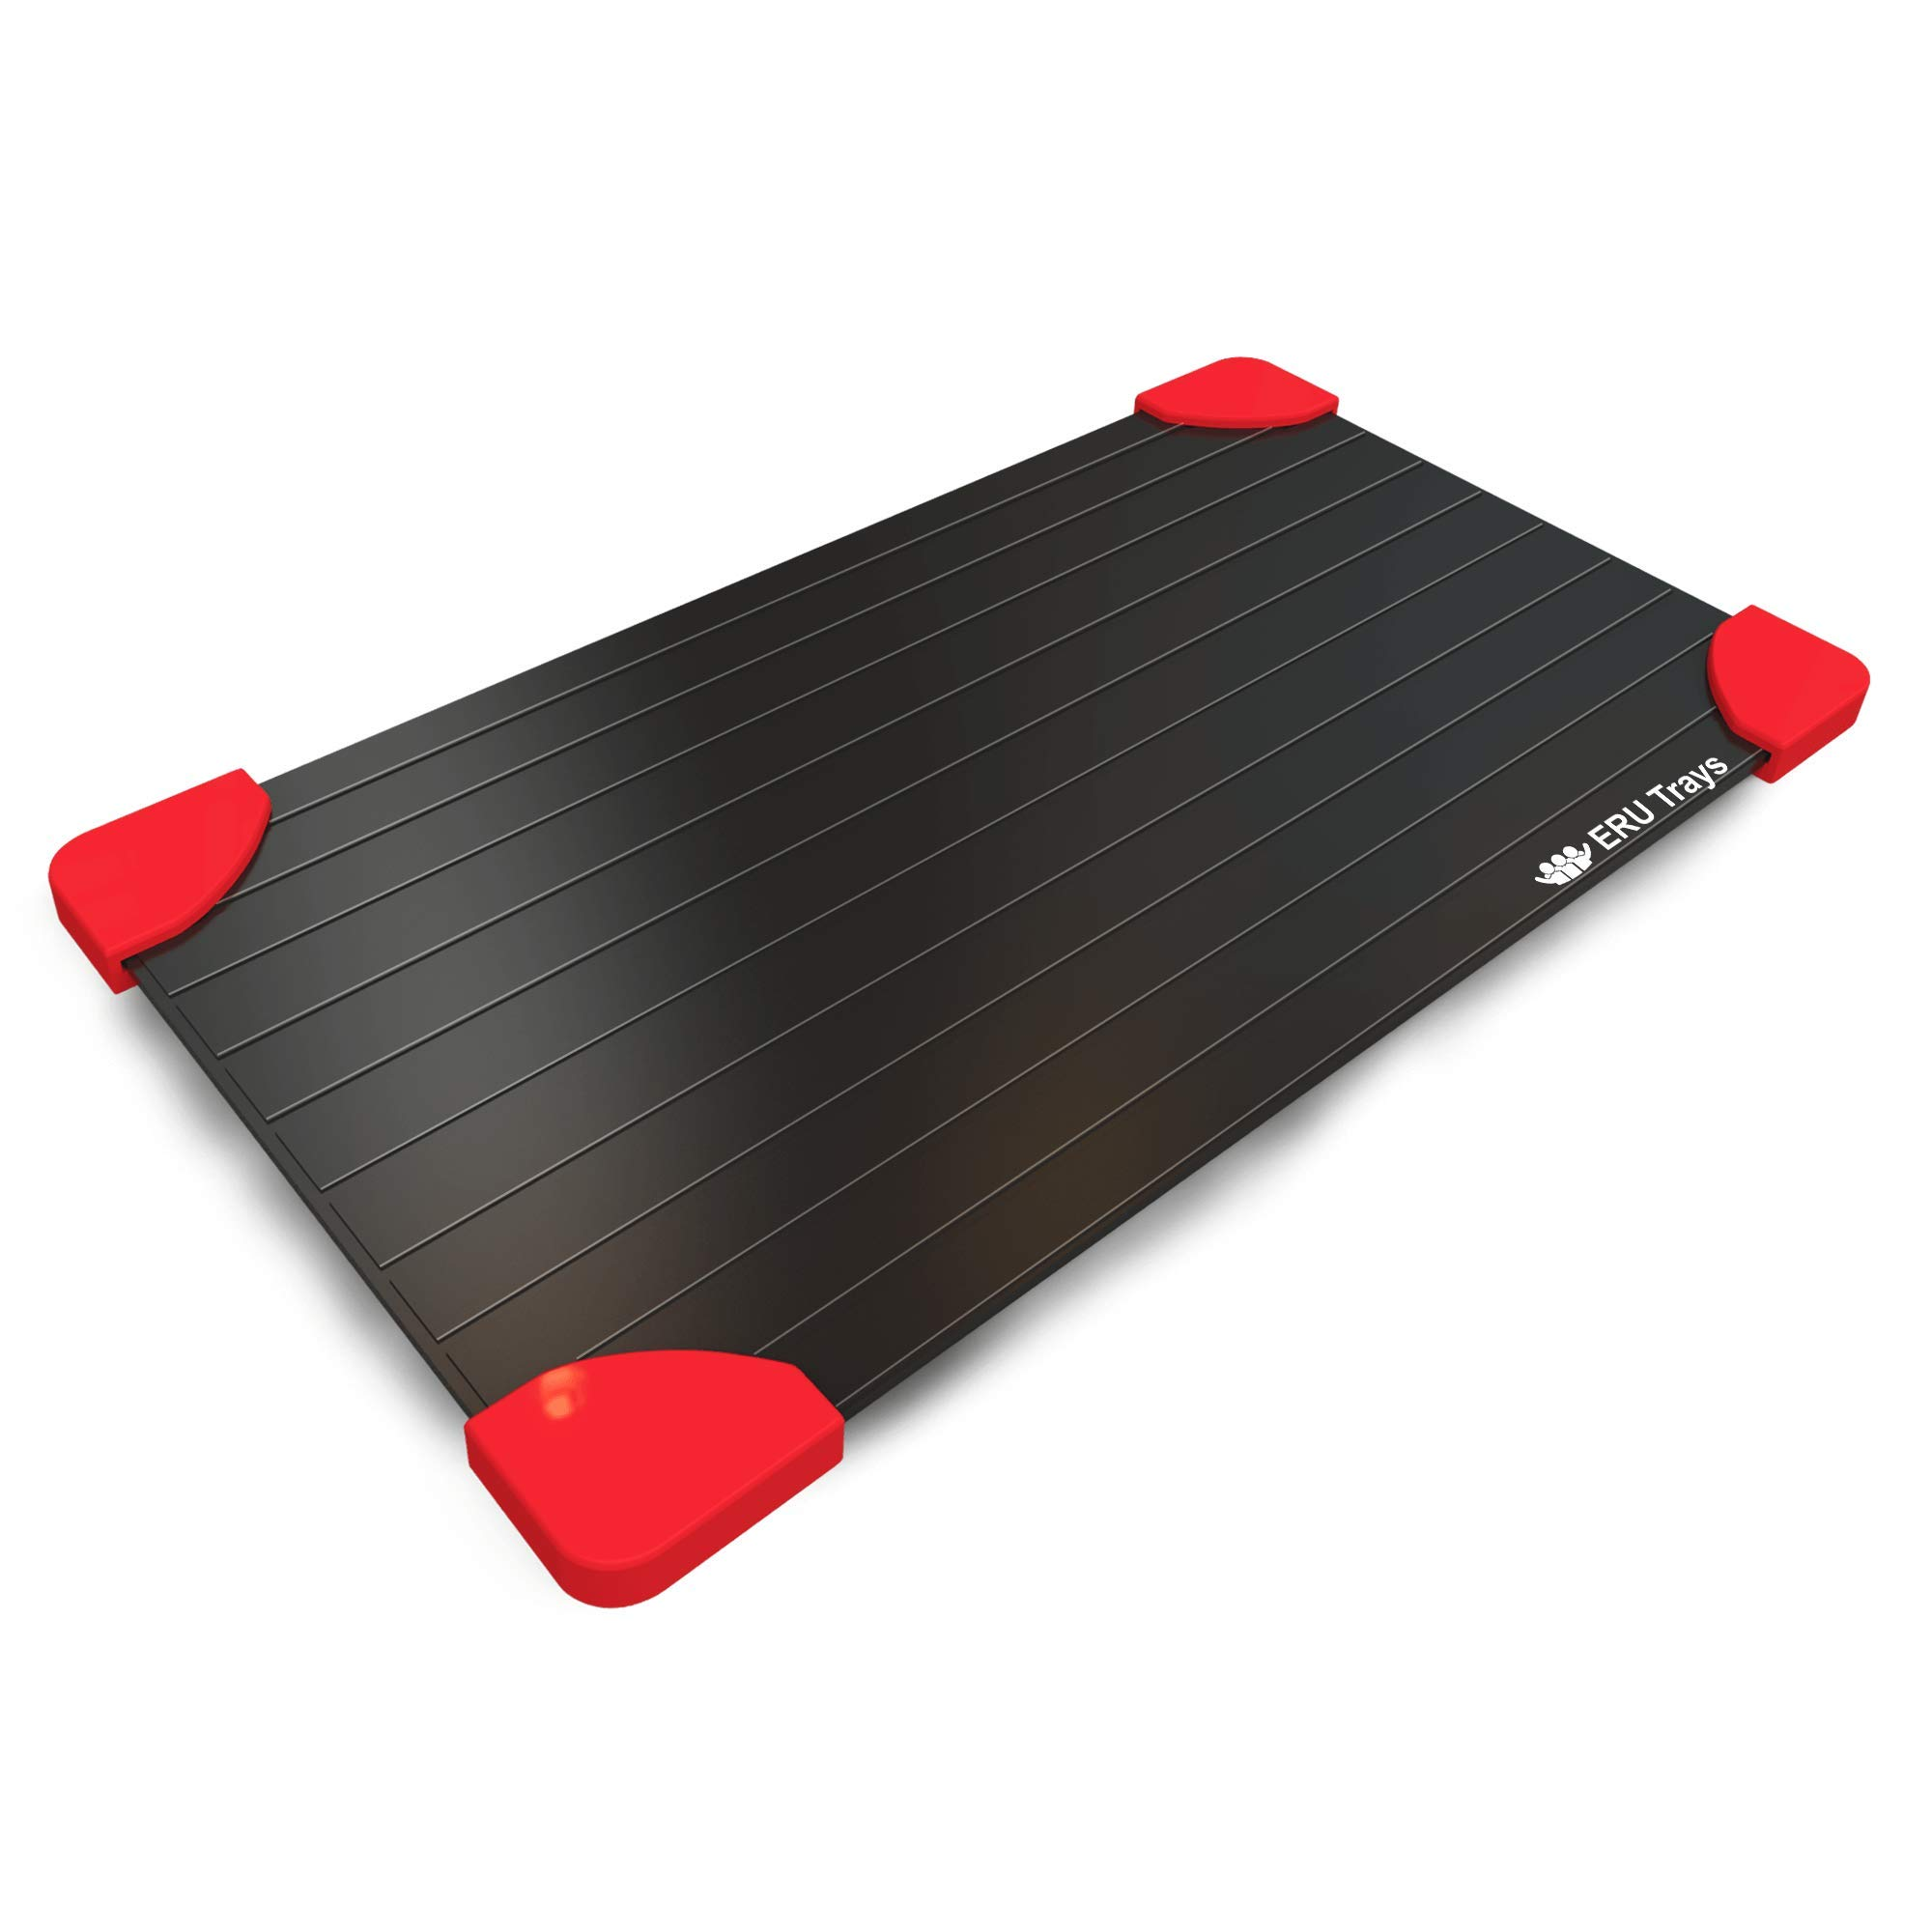 Rapid Thaw Defrosting Tray ERU- LARGEST SIZE 3mm Thickness Magic Fast Thawing Plate For Frozen Foods - No Battery, No Microwave - FDA Approved